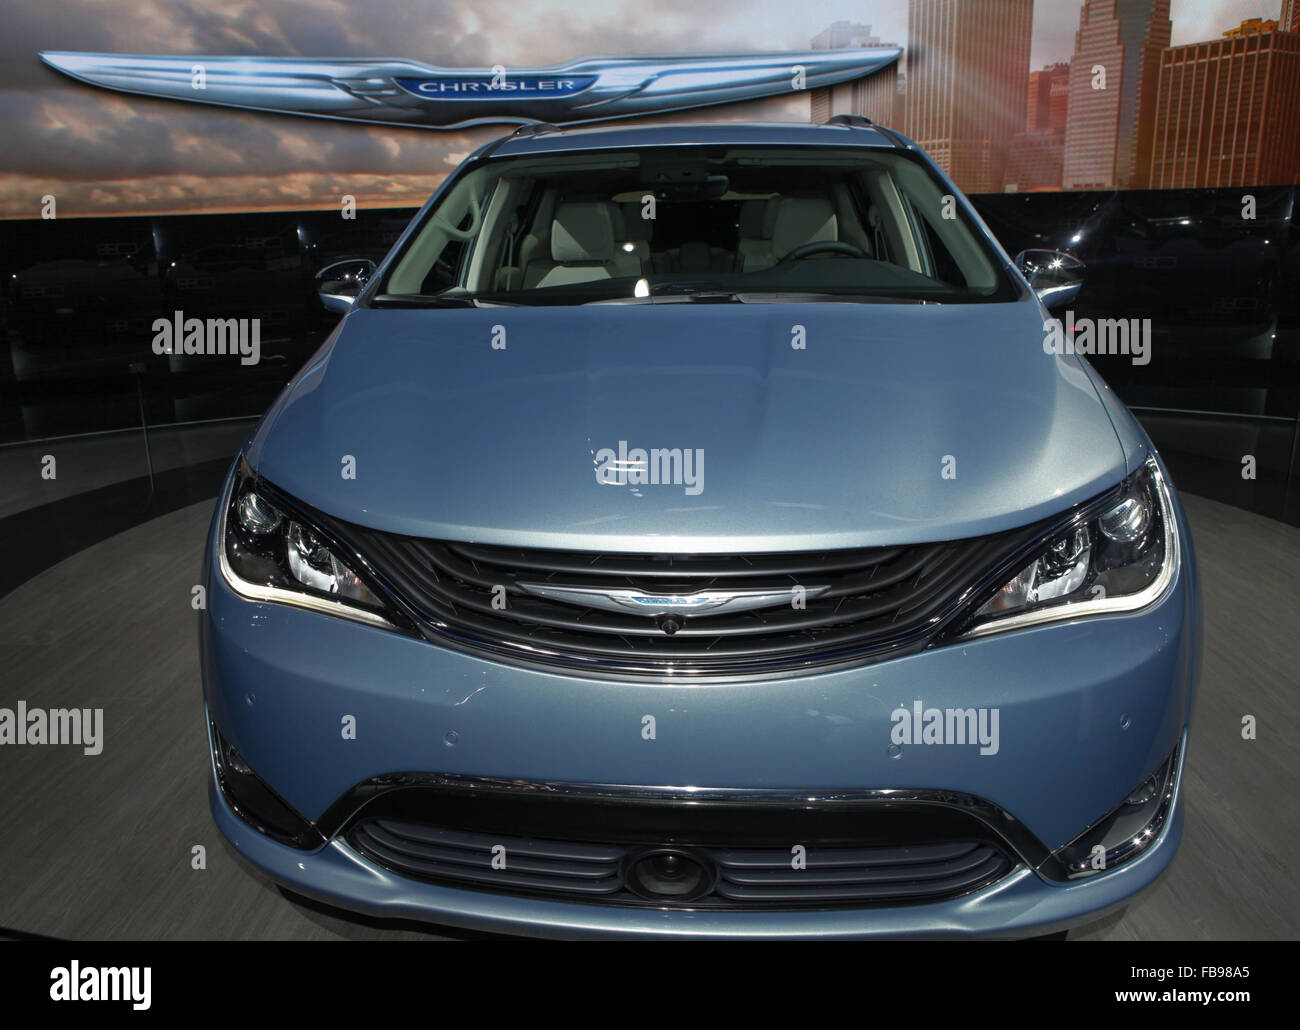 leaf car pacifica ferrari new m what the connection h volt whats news chrysler vs ff s